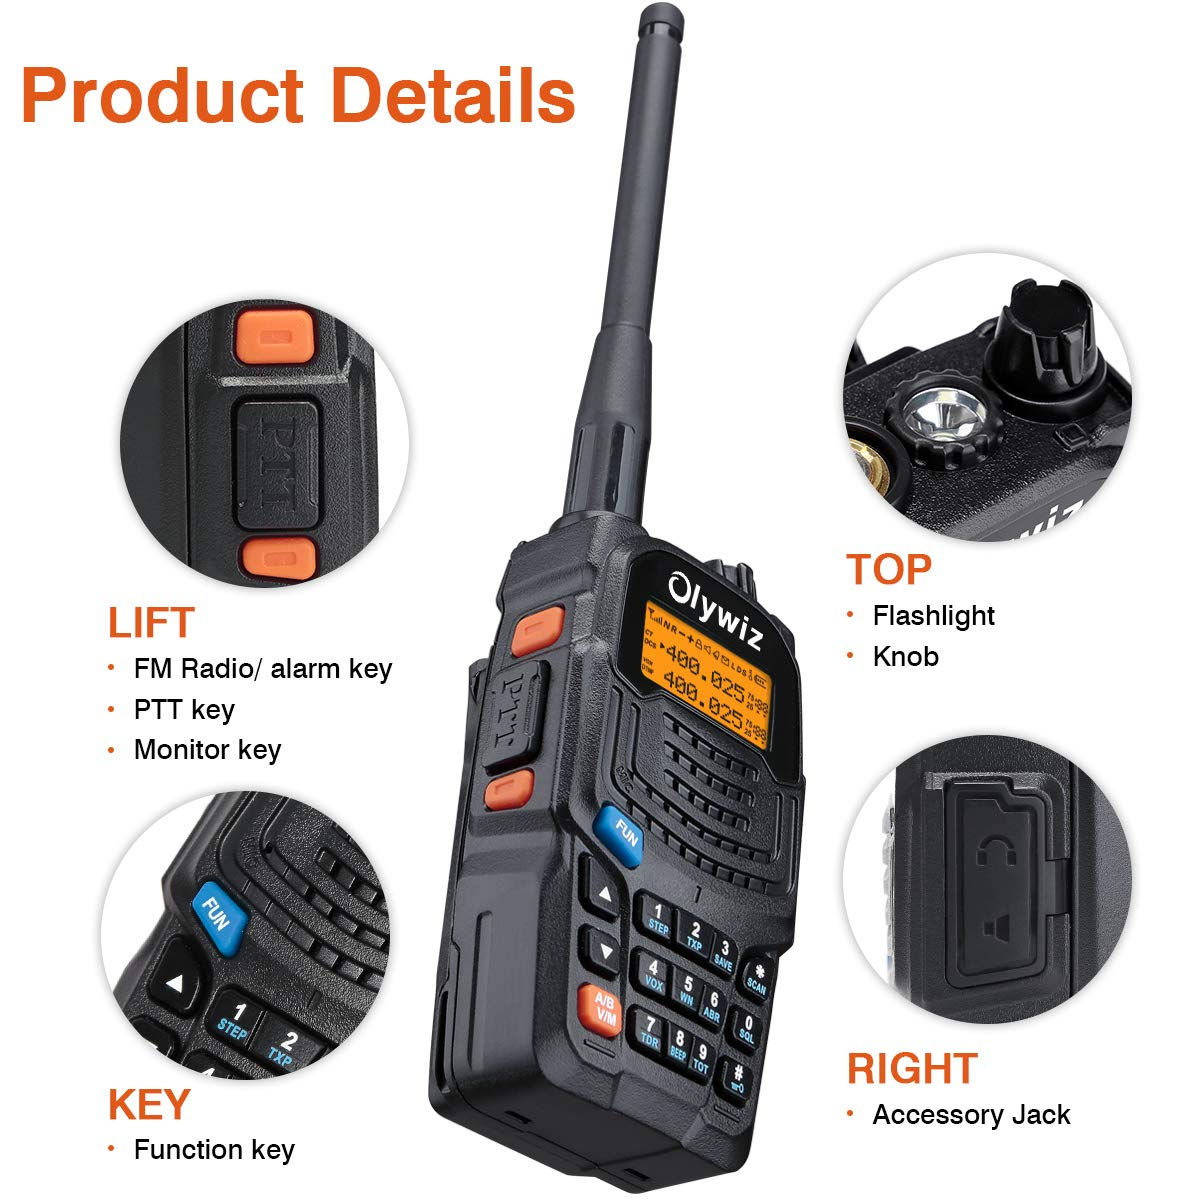 Pack for 2 BeiLan Portable Handheld 2-way Ham Radio Wireless Professional Walkie-Talkie Multifunctional Mobile Radio for Outdoor Activities